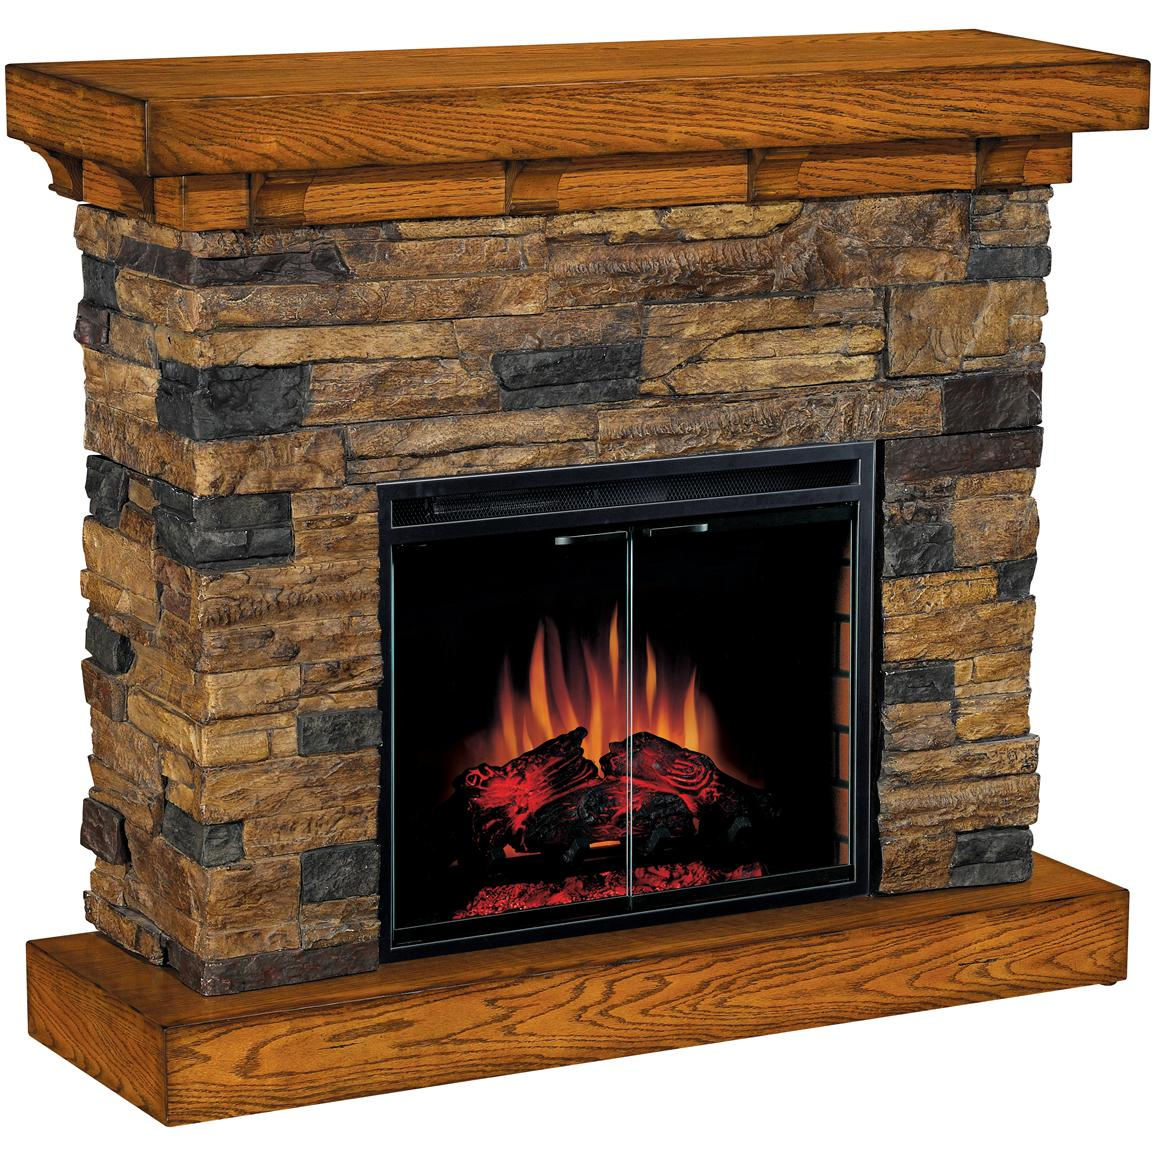 Classic Flame™ Flagstone Electric Fireplace - 175732, Fireplaces at Sportsman's Guide